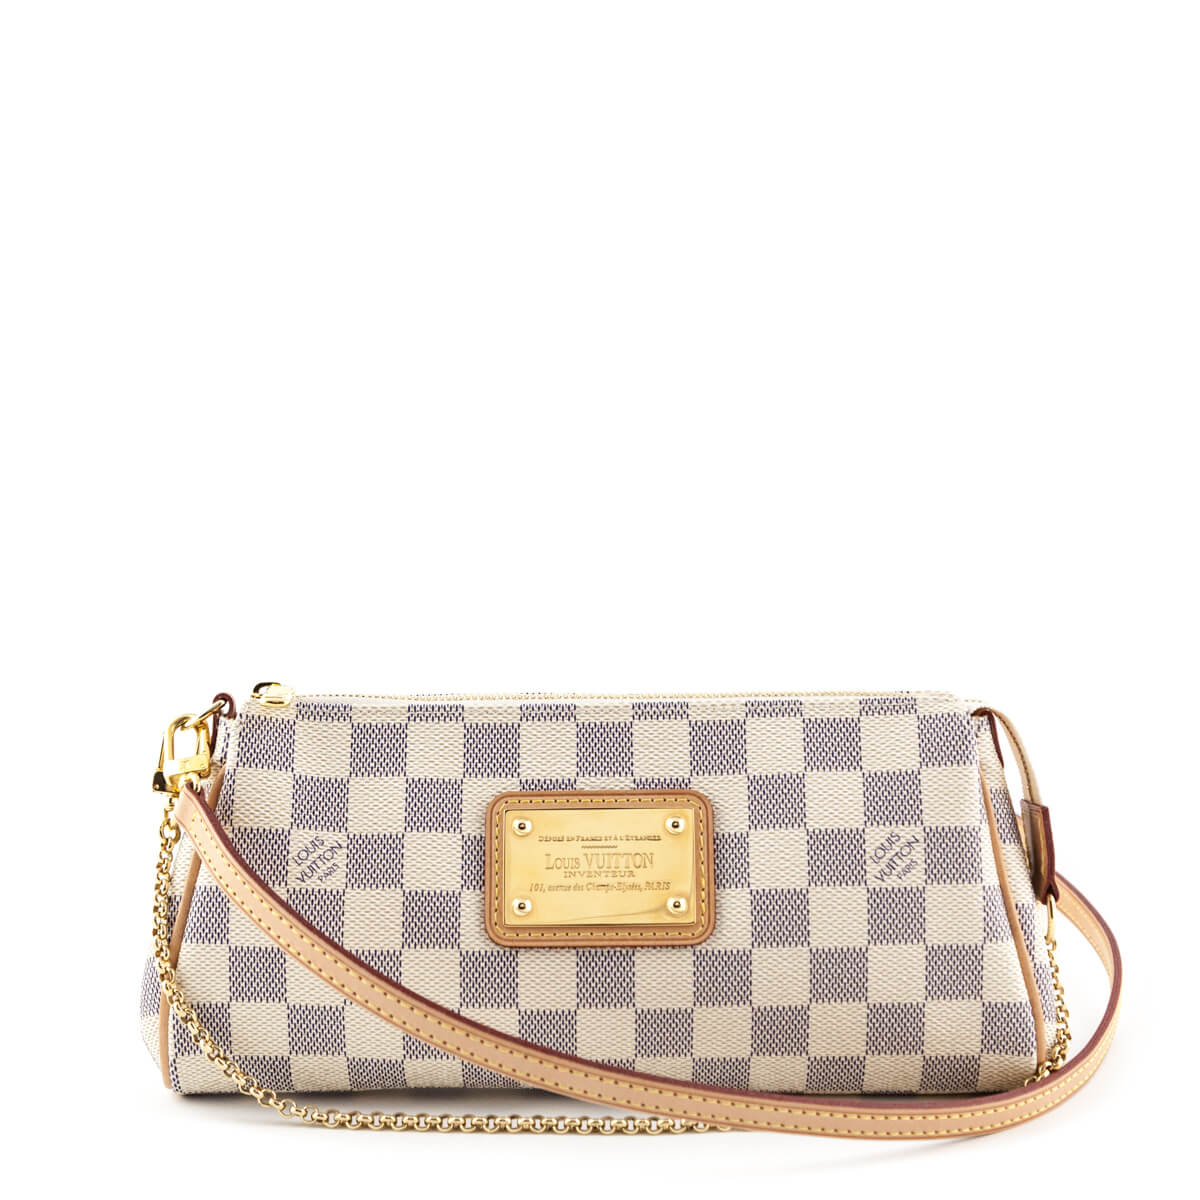 d42a843a28e1 Louis Vuitton Damier Azur Eva Clutch - LOVE that BAG - Preowned Authentic  Designer Handbags ...